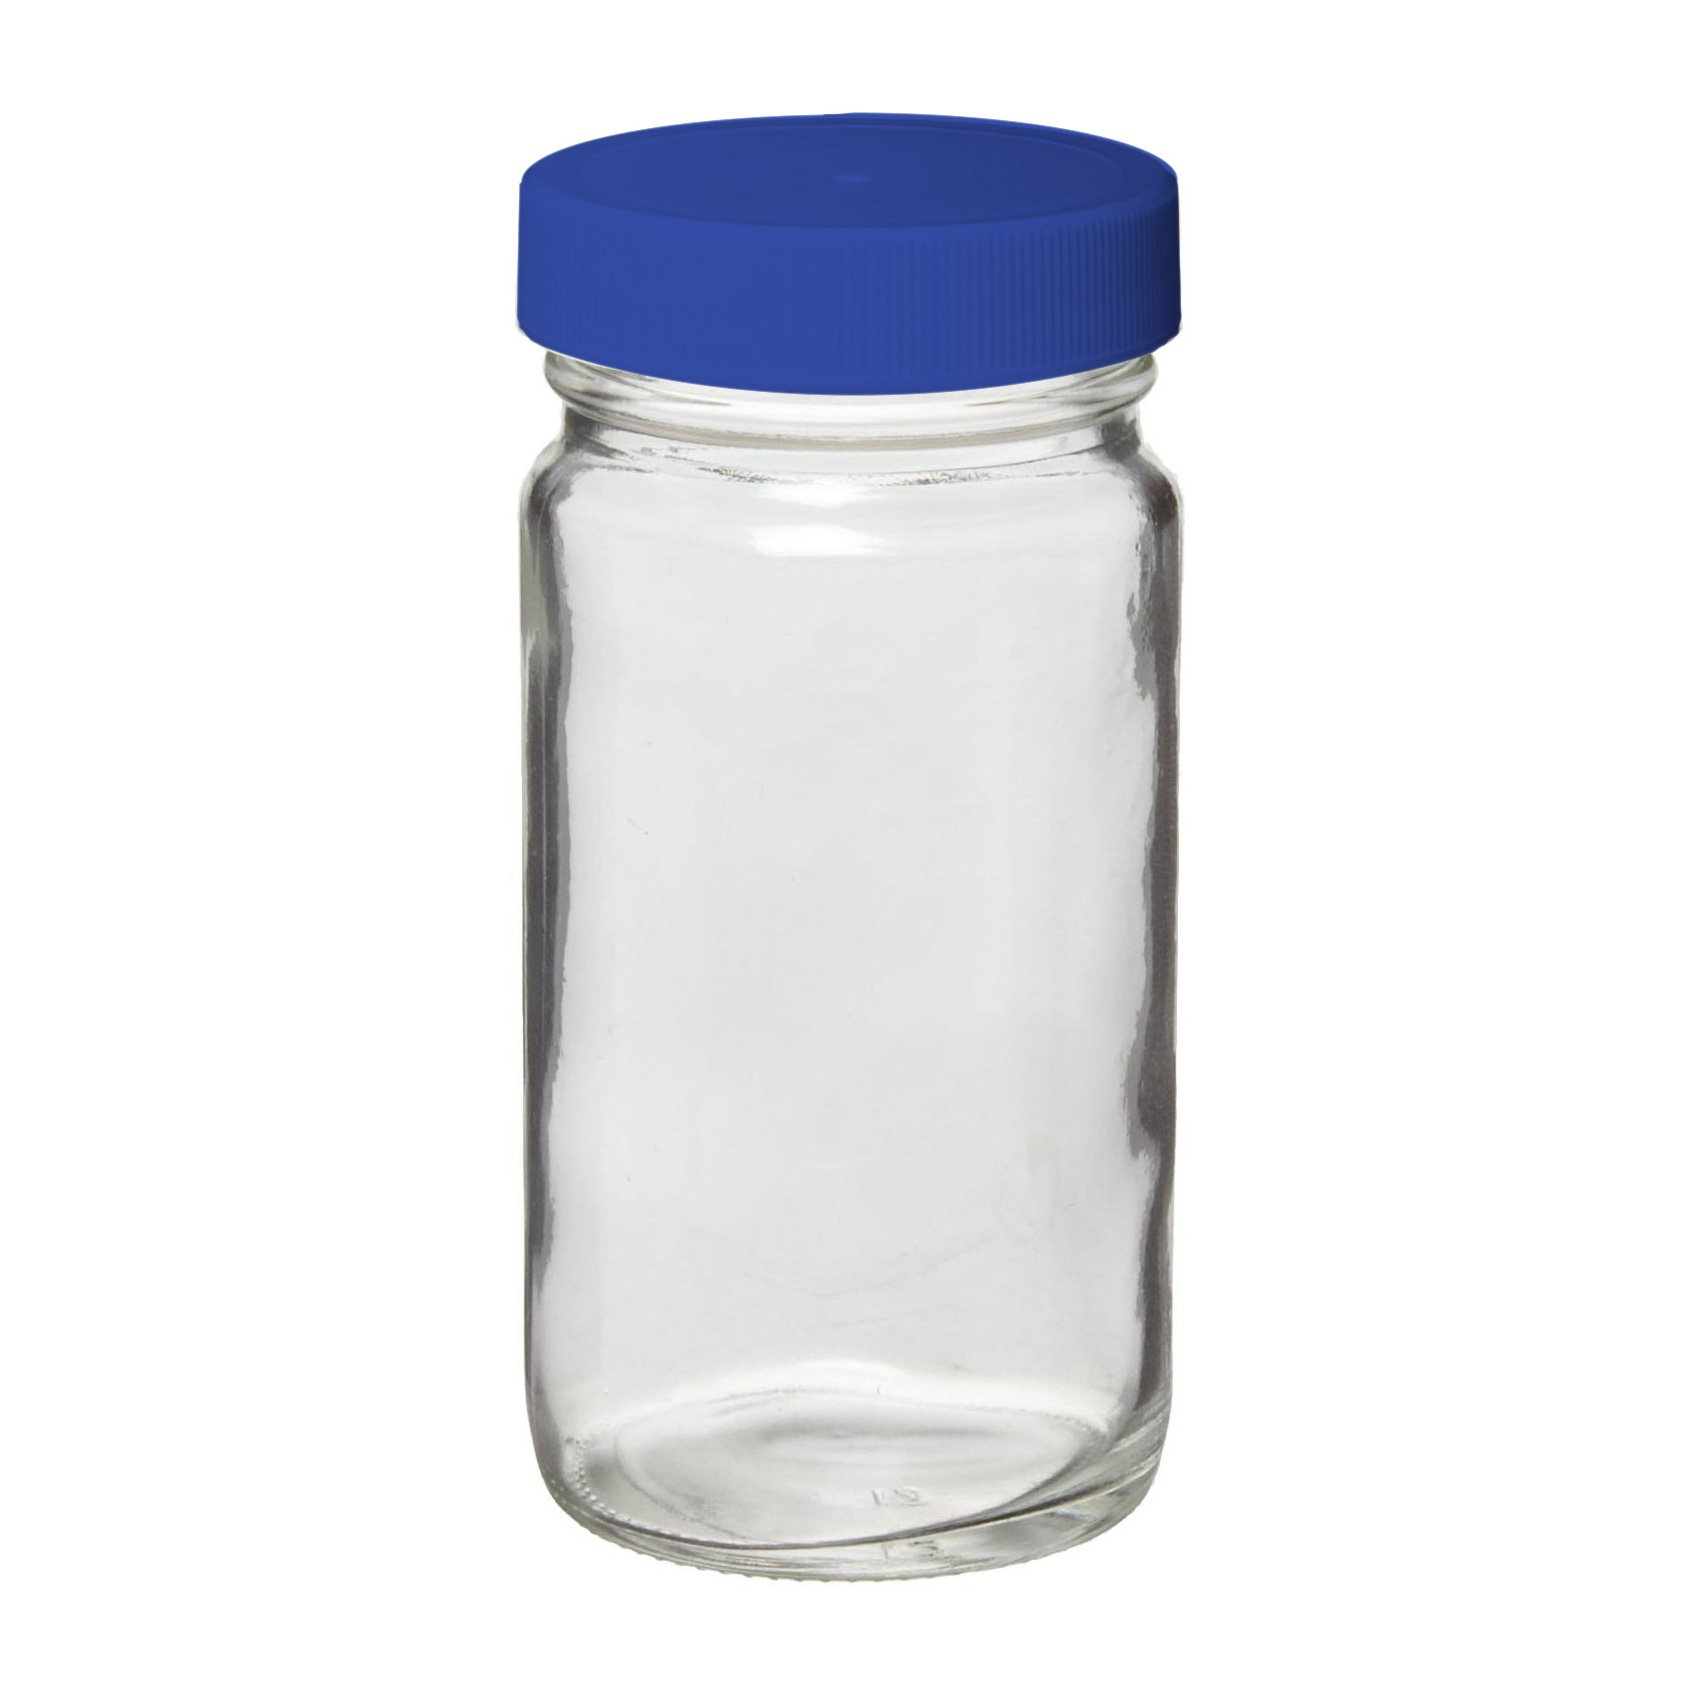 I-Chem Brand 121-0250 Clear Glass 250mL 100 Series Type III Mouth Jar, with PTFE-Lined Polypropylene Closure, Tall, Unprocessed (Case of 12)